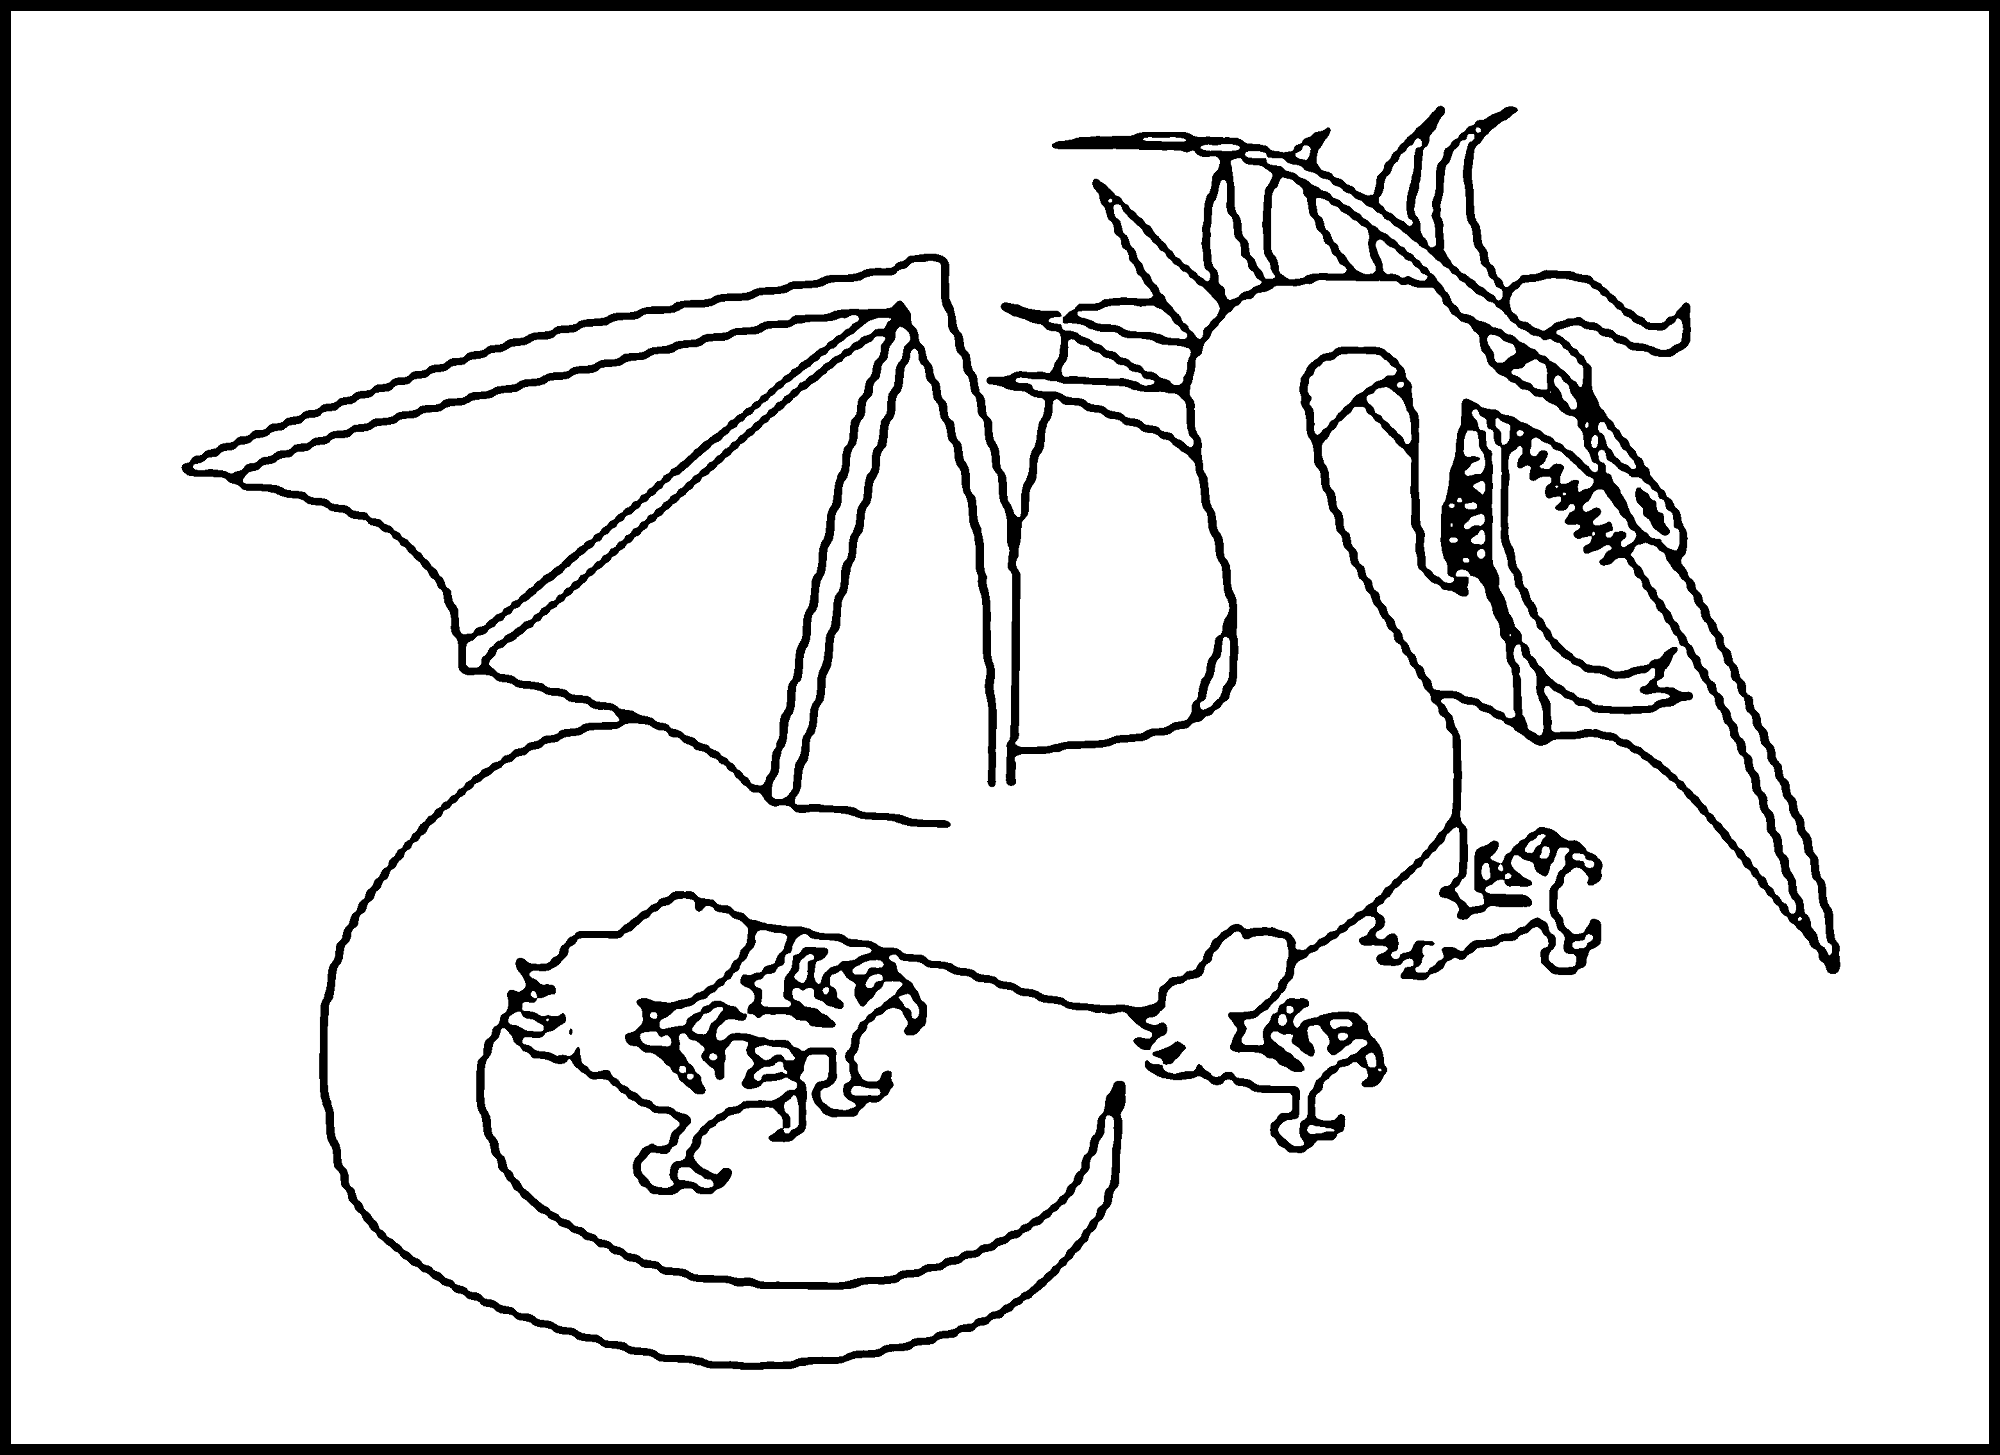 printable dragon pictures printable dragon coloring pages for kids cool2bkids dragon printable pictures